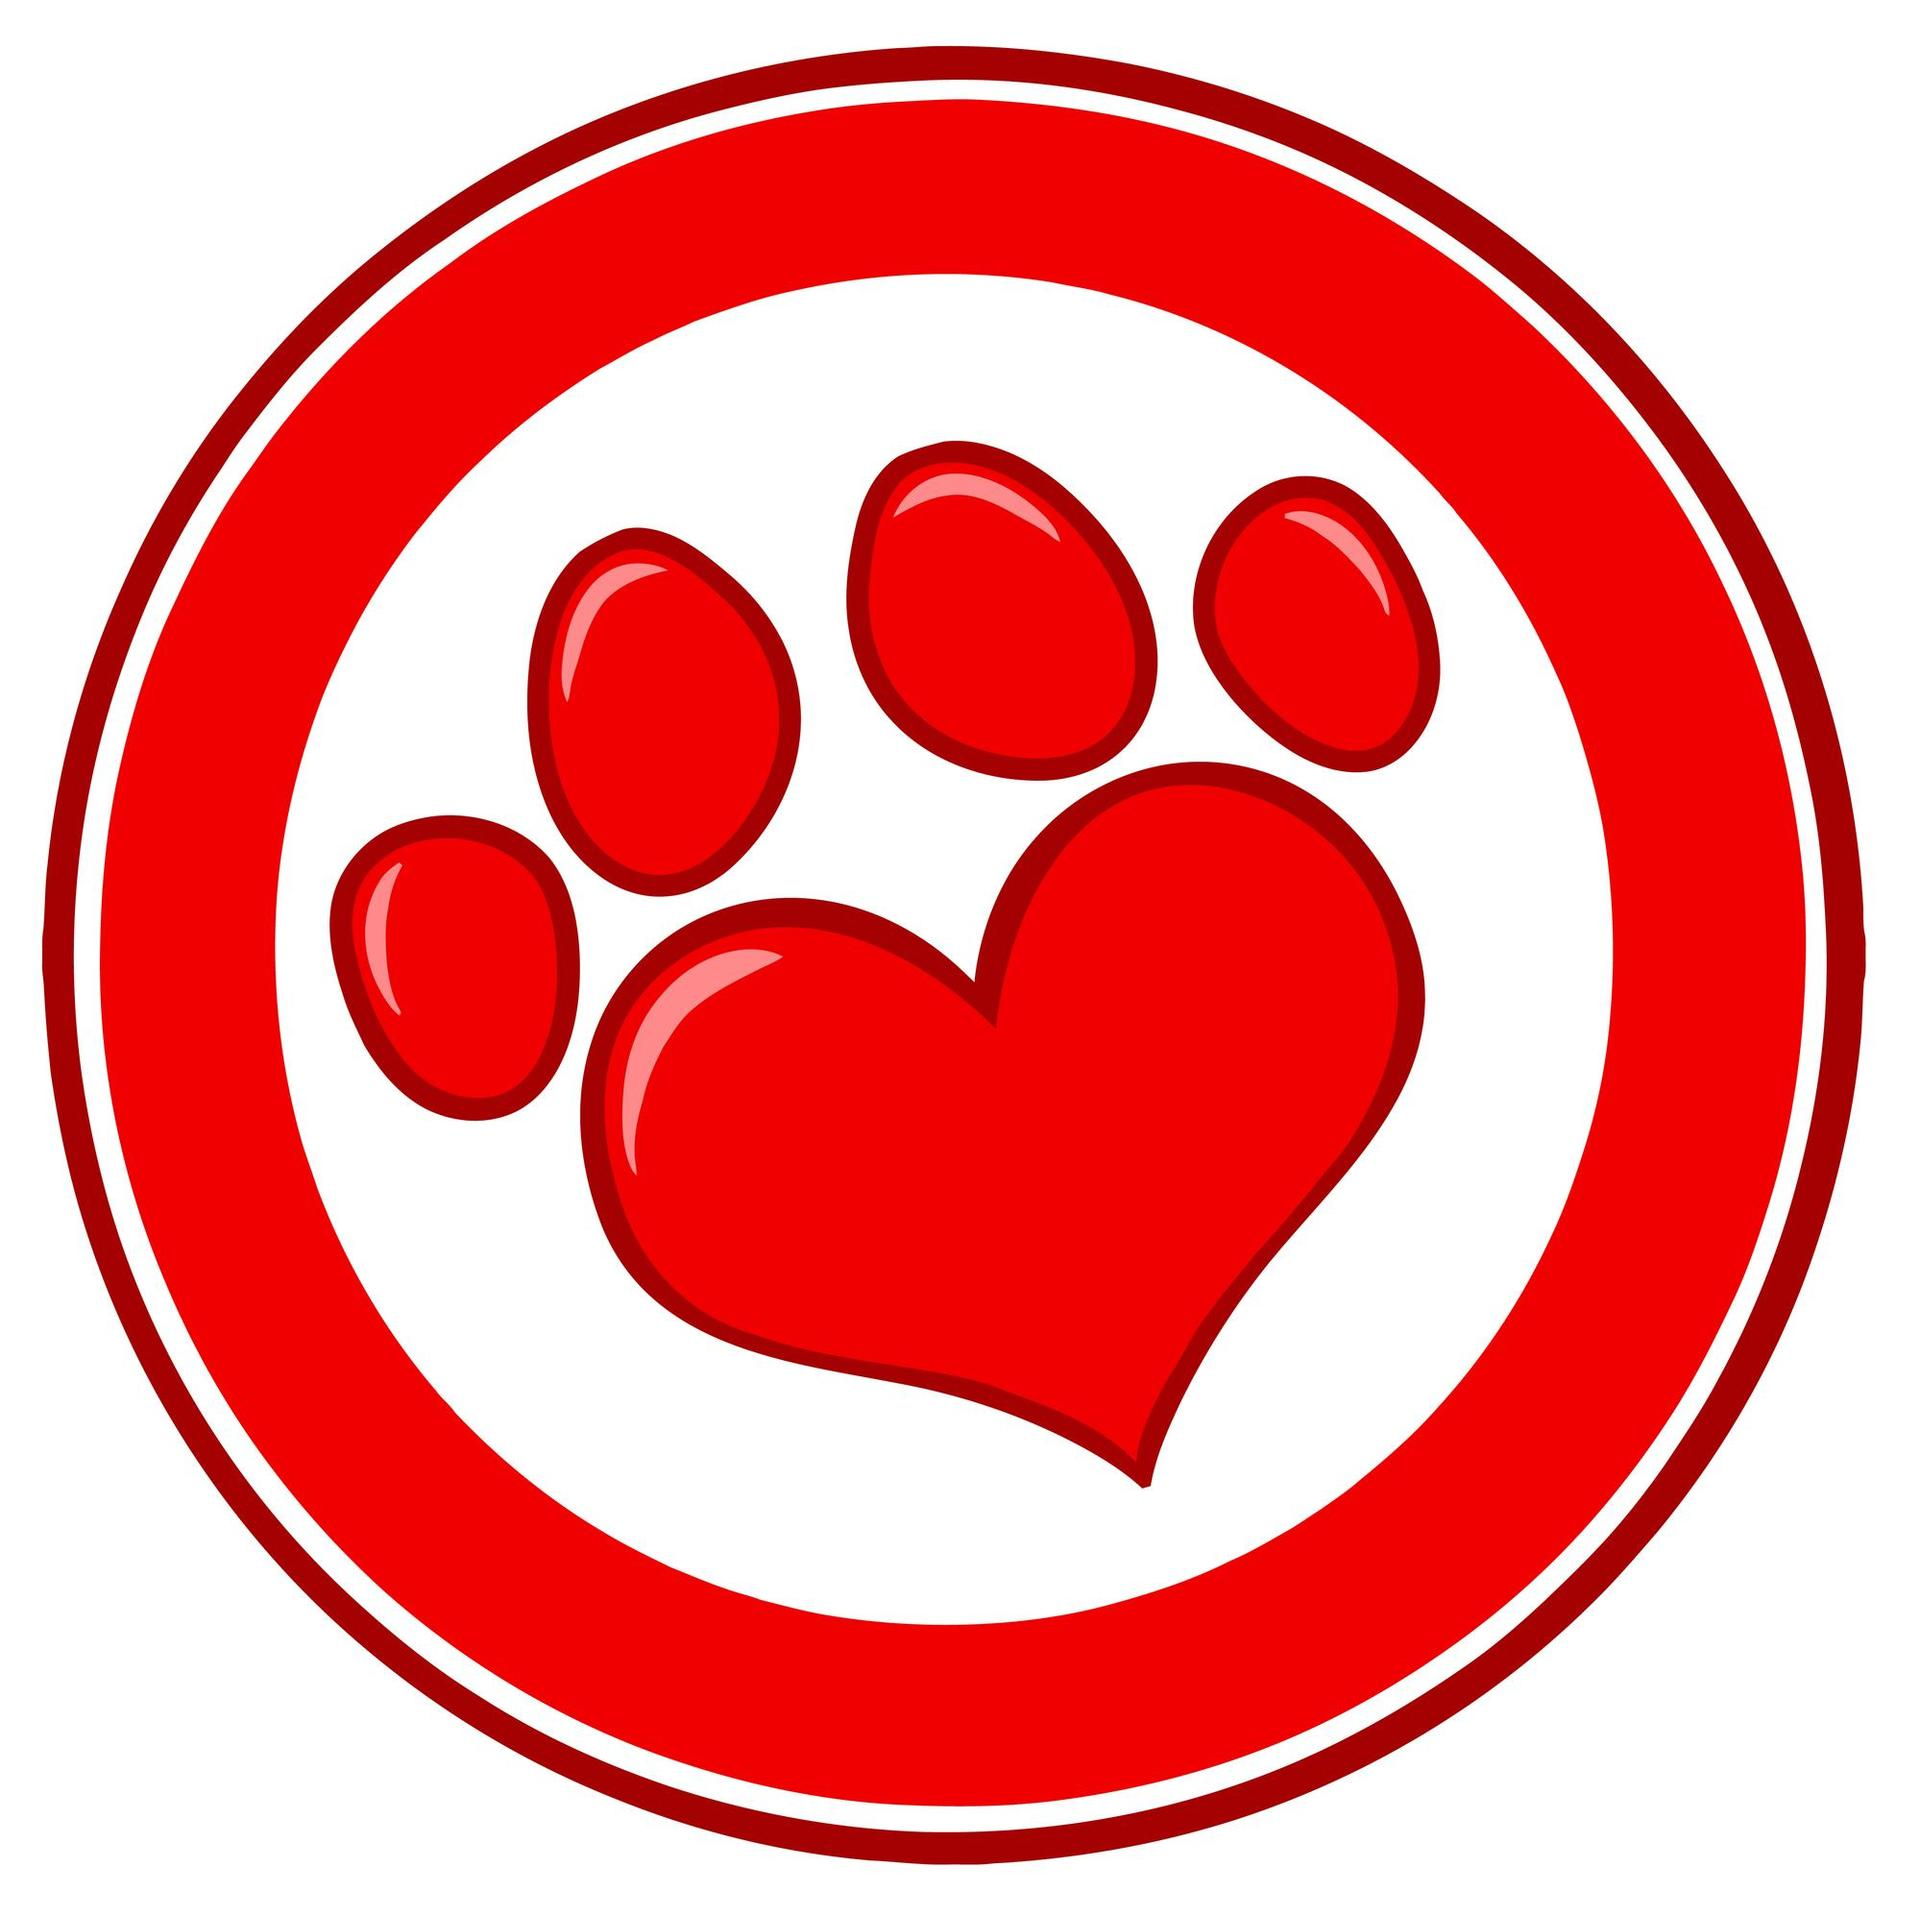 graphic of heart shaped paw